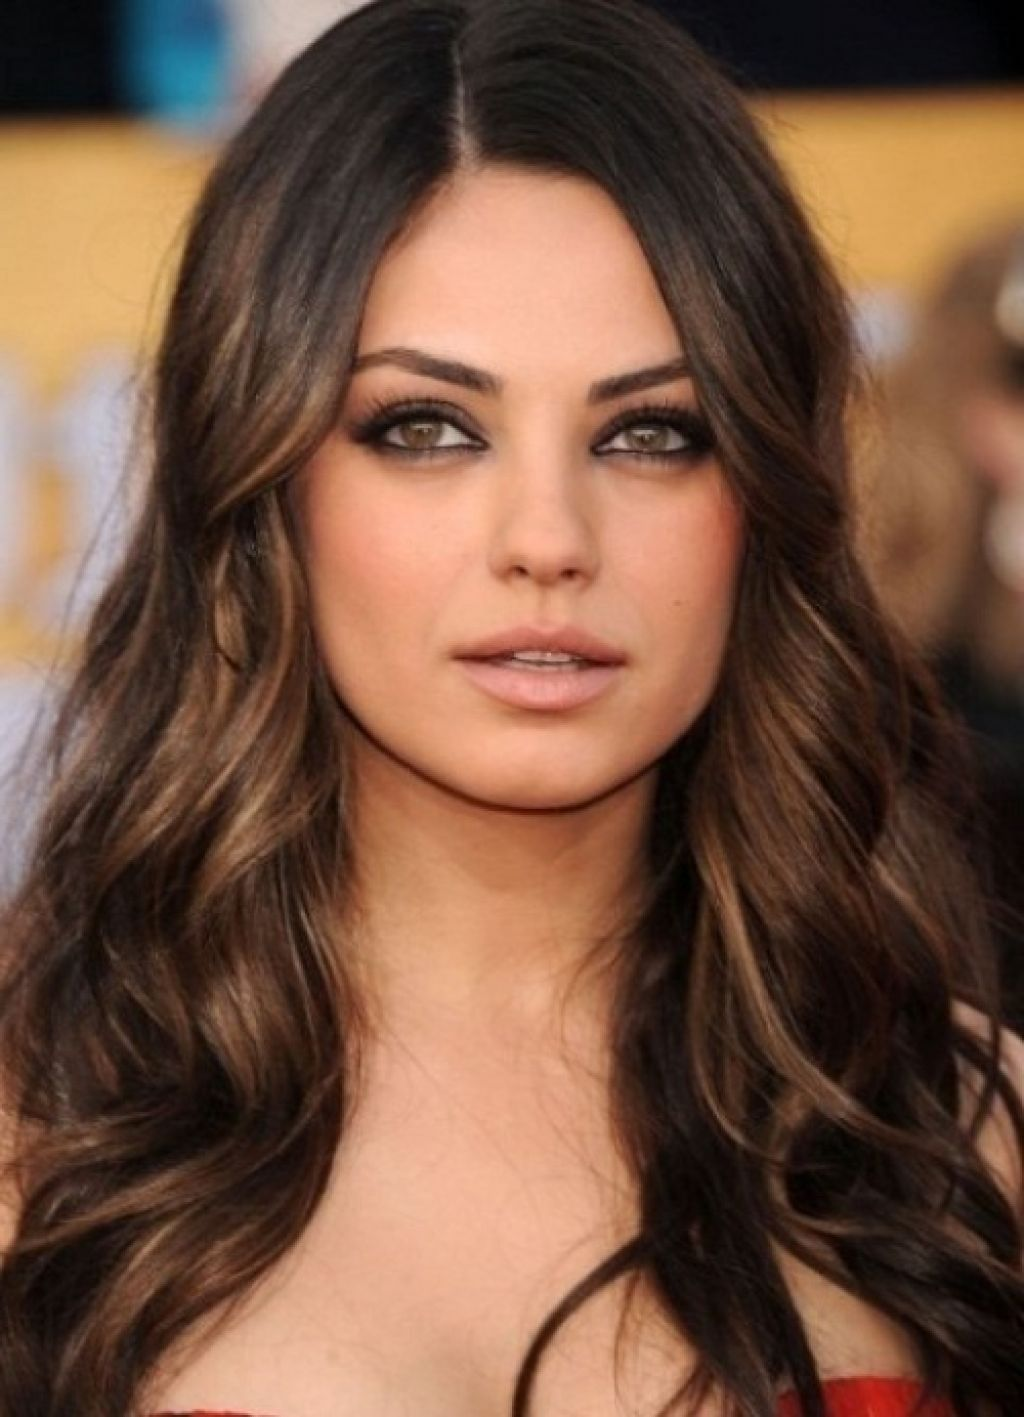 Hair Colors for Tan Skin and Brown Eyes - Best Hair Color ...